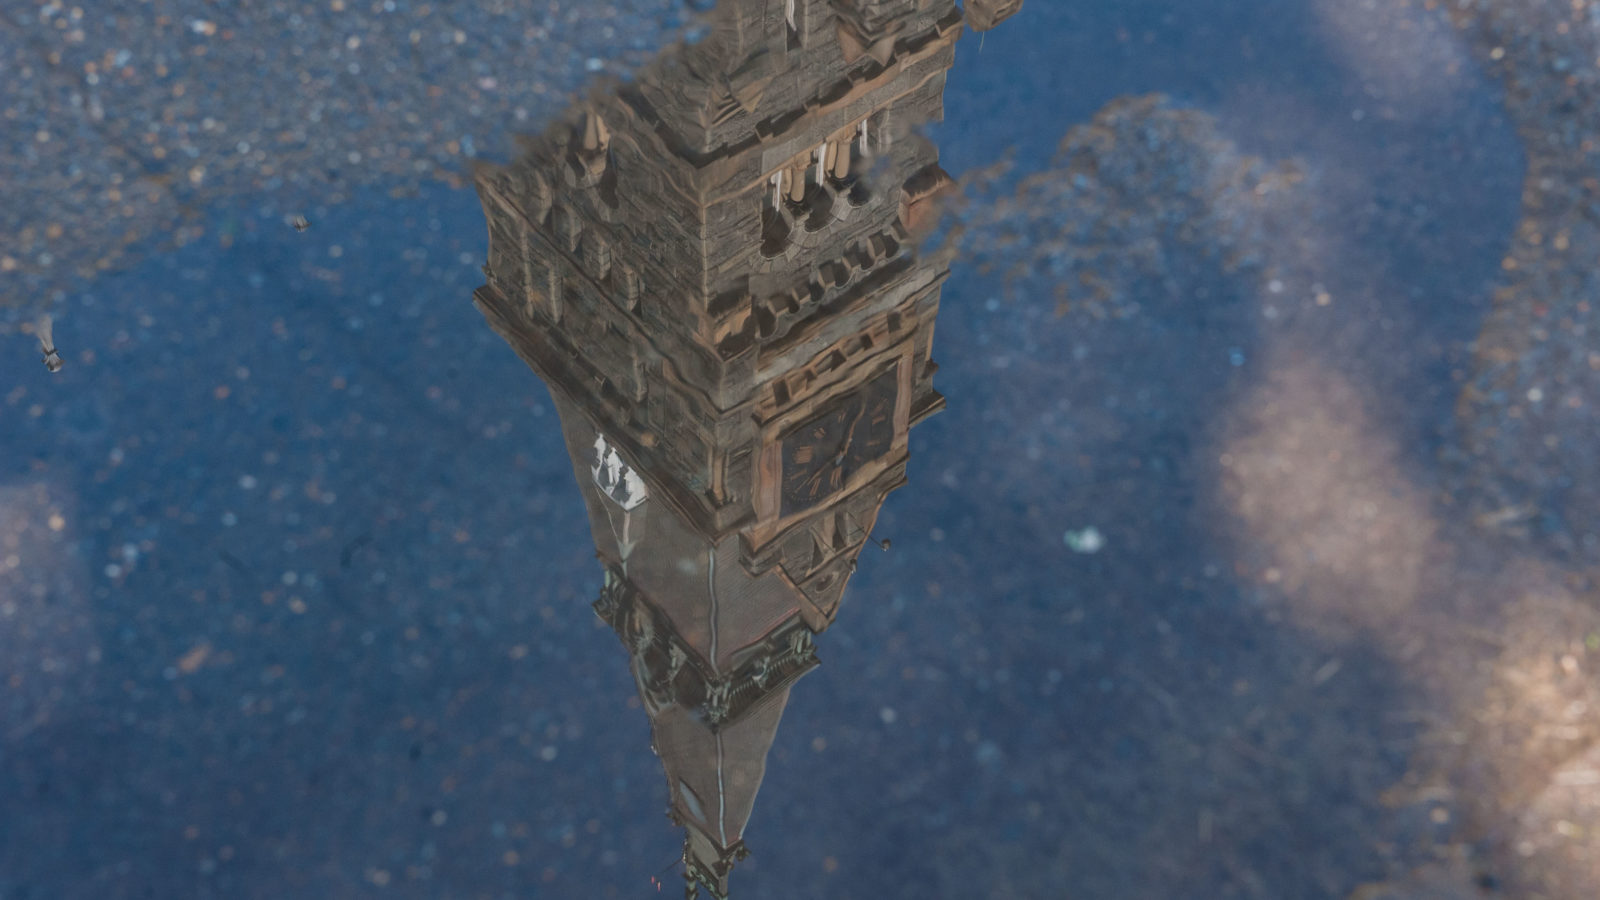 Healy Hall reflected in a puddle.